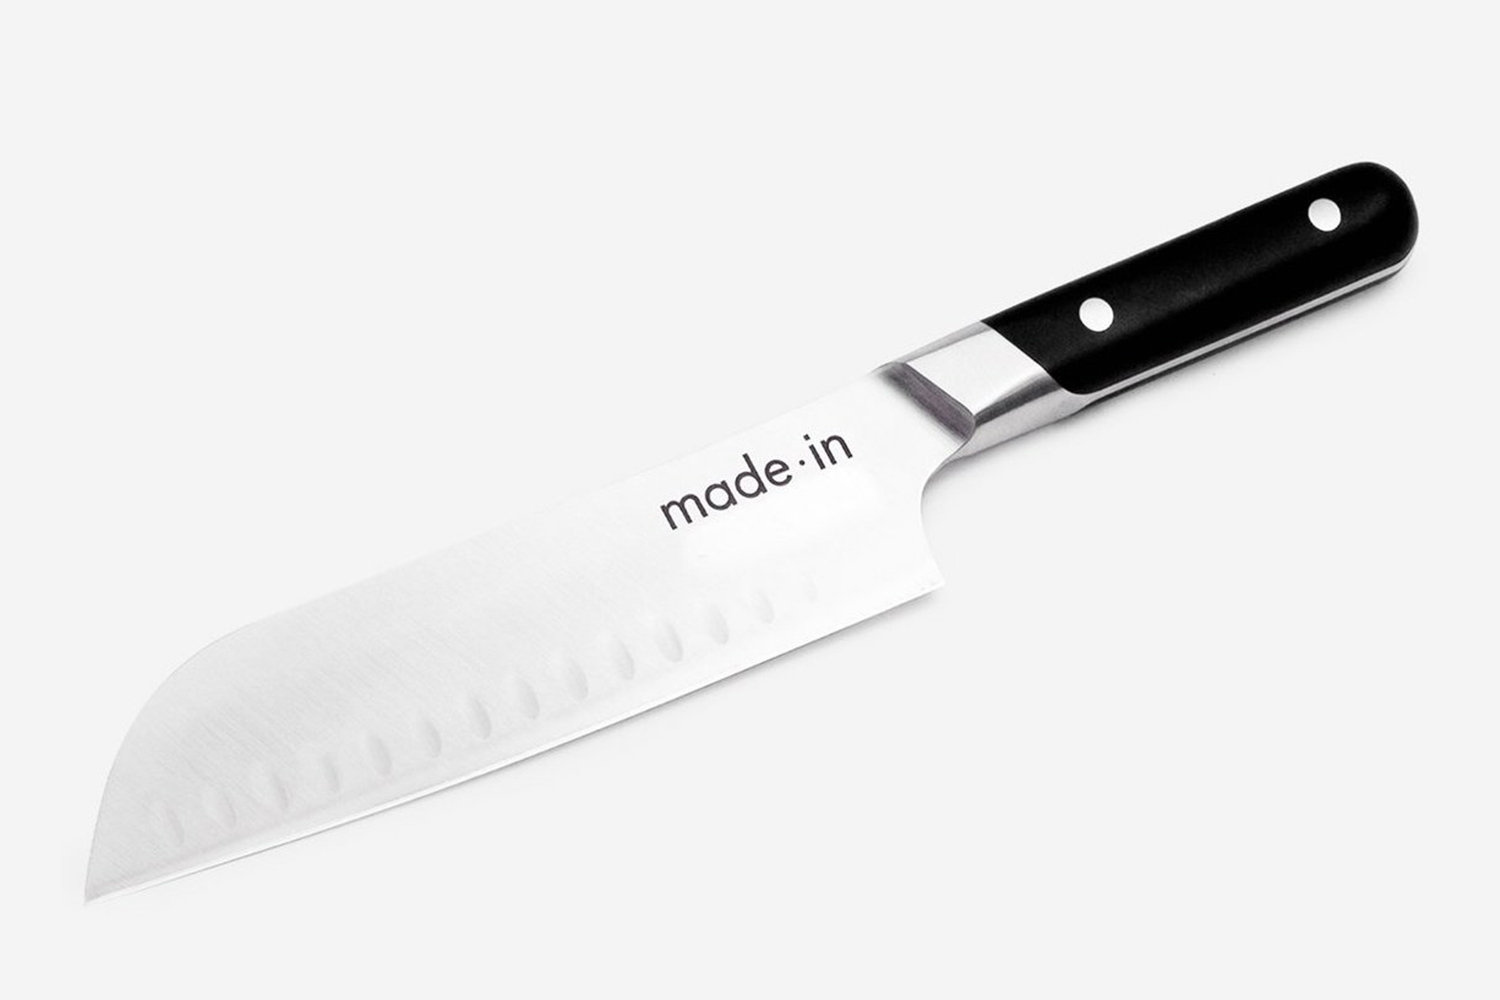 The Santoku Knife from Made In Cookware featuring a sheepsfoot blade and flat cutting plane